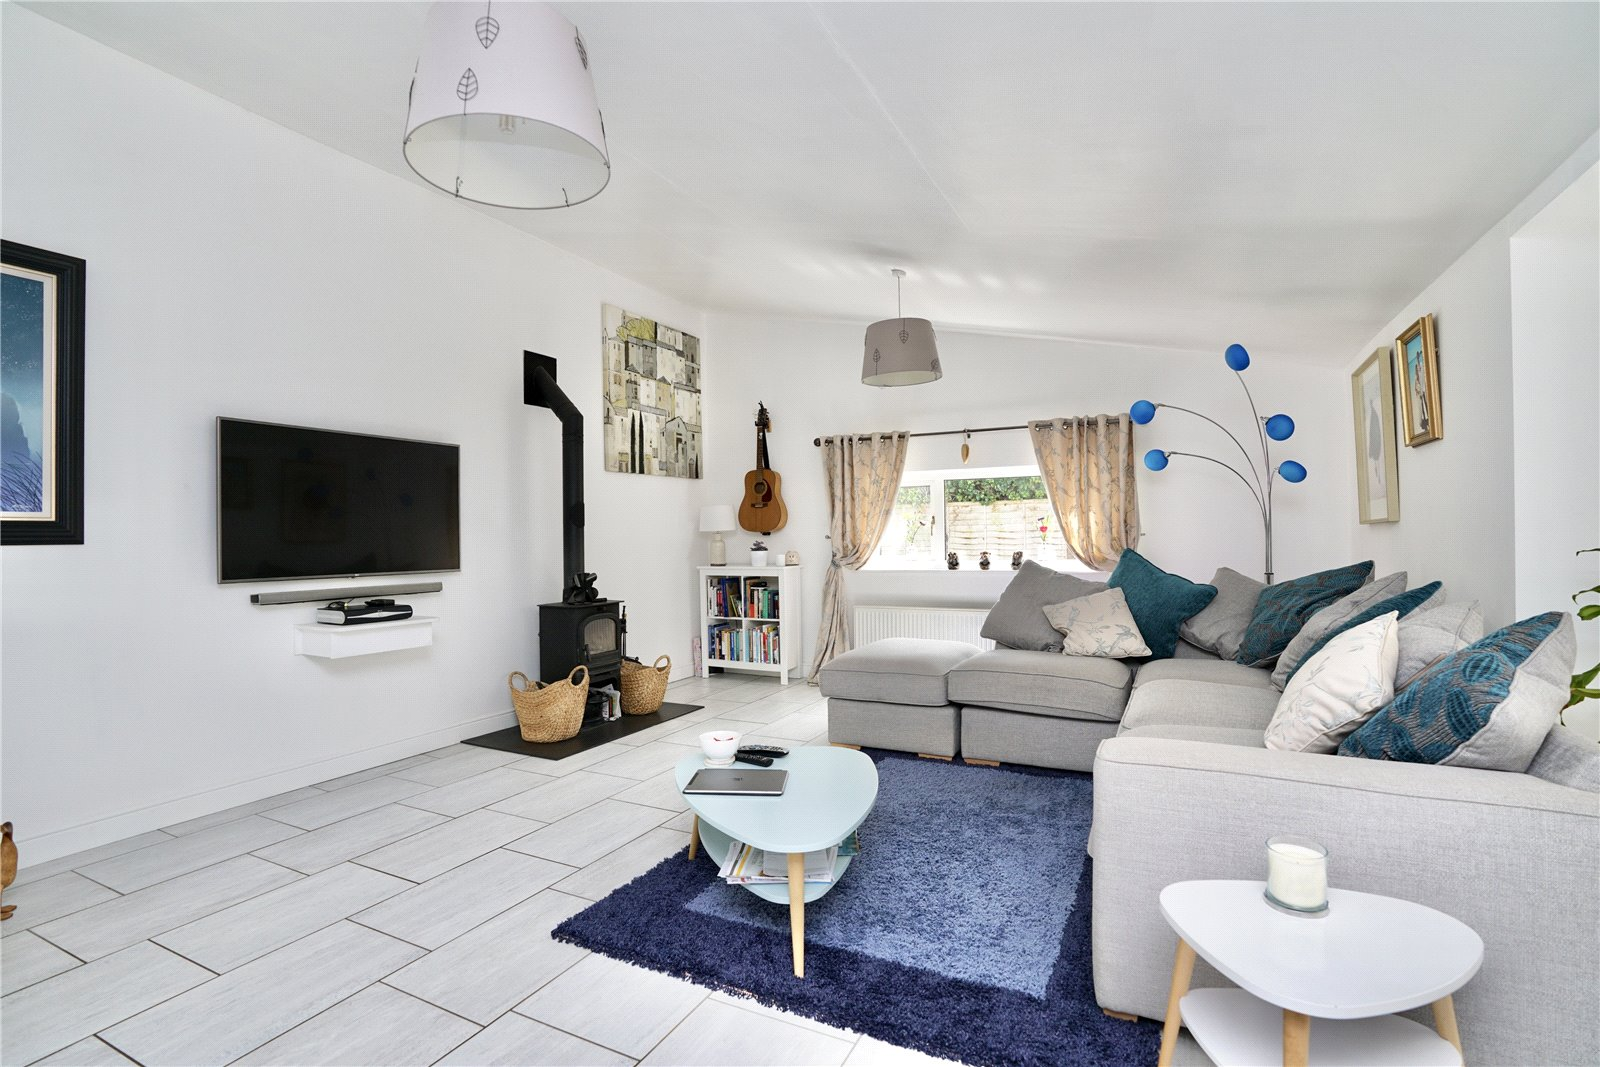 3 bed bungalow for sale in Wyton, PE28 2AL - Property Image 1